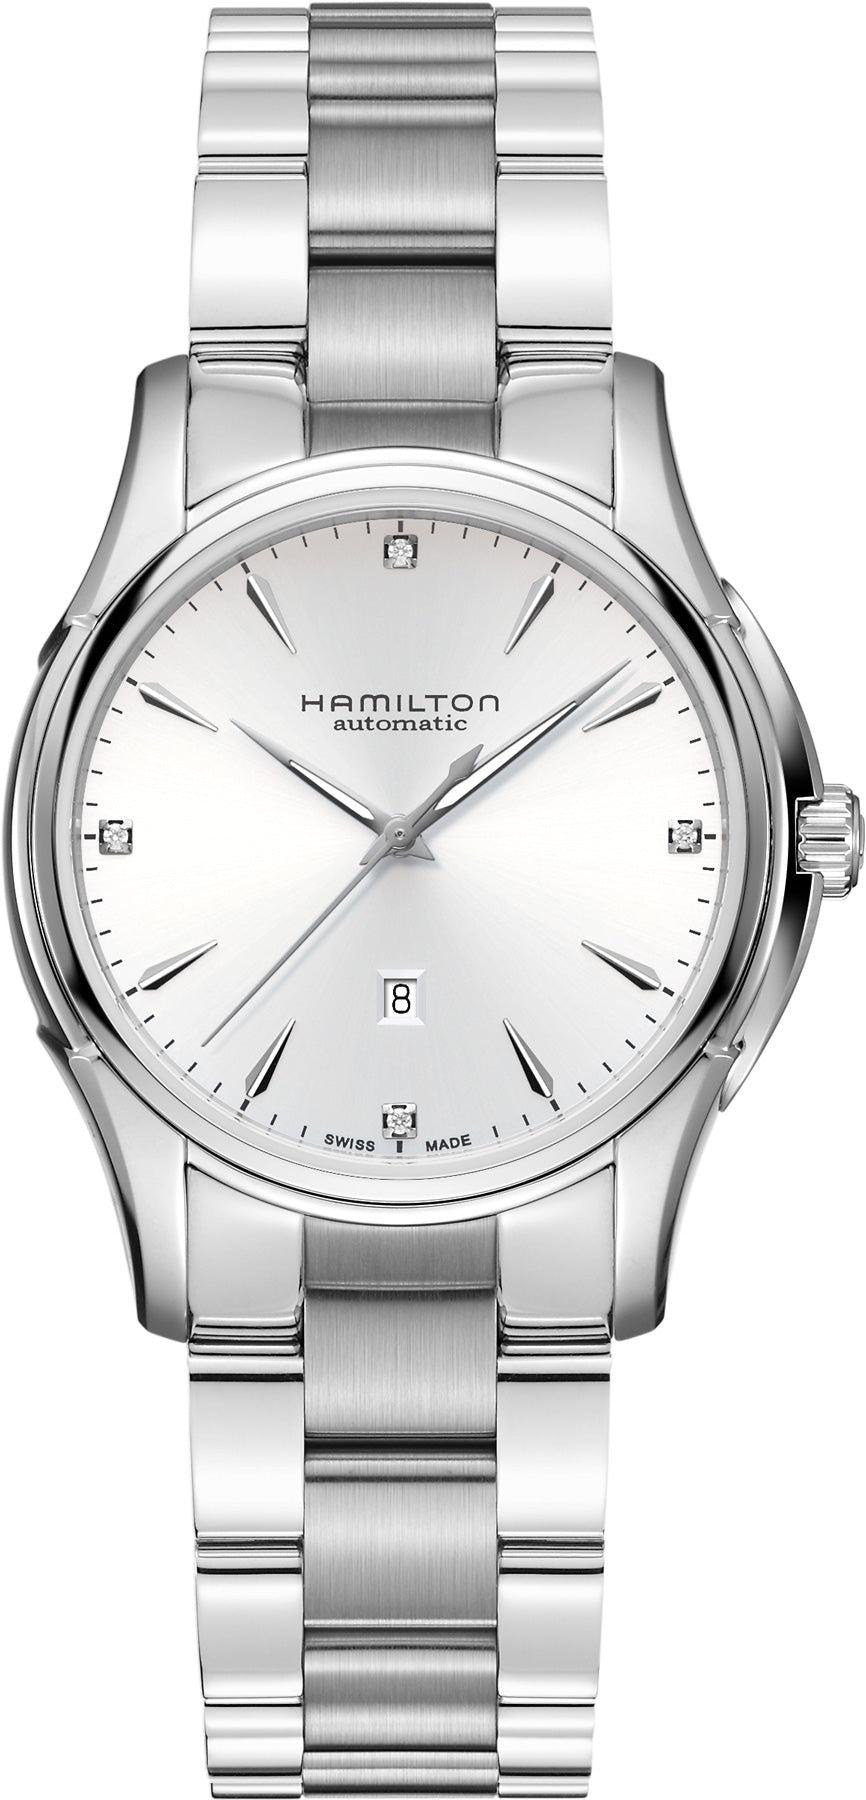 b8c75d89fd Hamilton Watch Jazzmaster Viewmatic Lady Hamilton Watch Jazzmaster  Viewmatic Lady